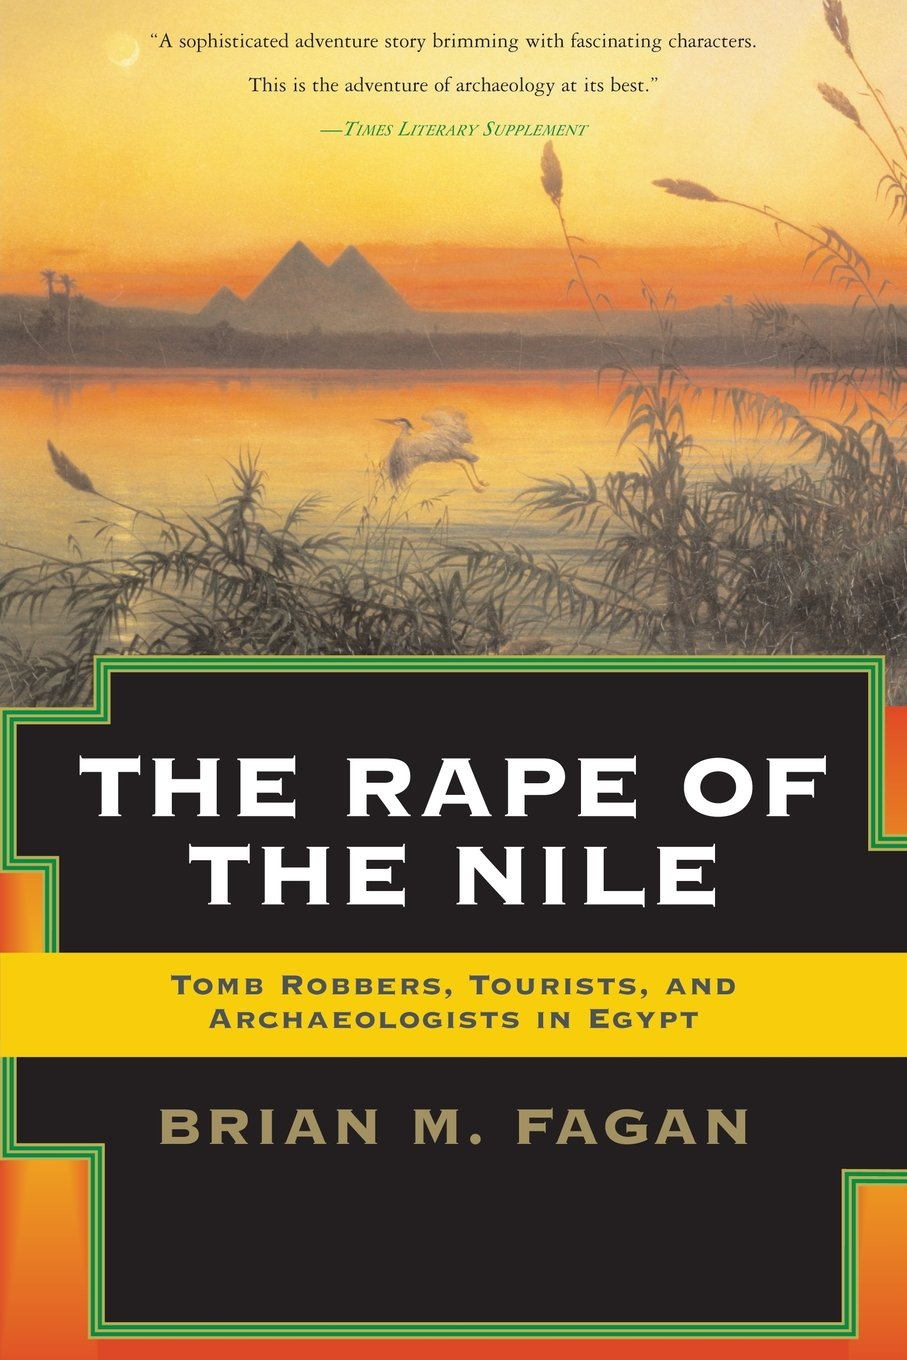 The Rape of the Nile: Tomb Robbers, Tourists, and Archaeologists in Egypt, Revised and Updated